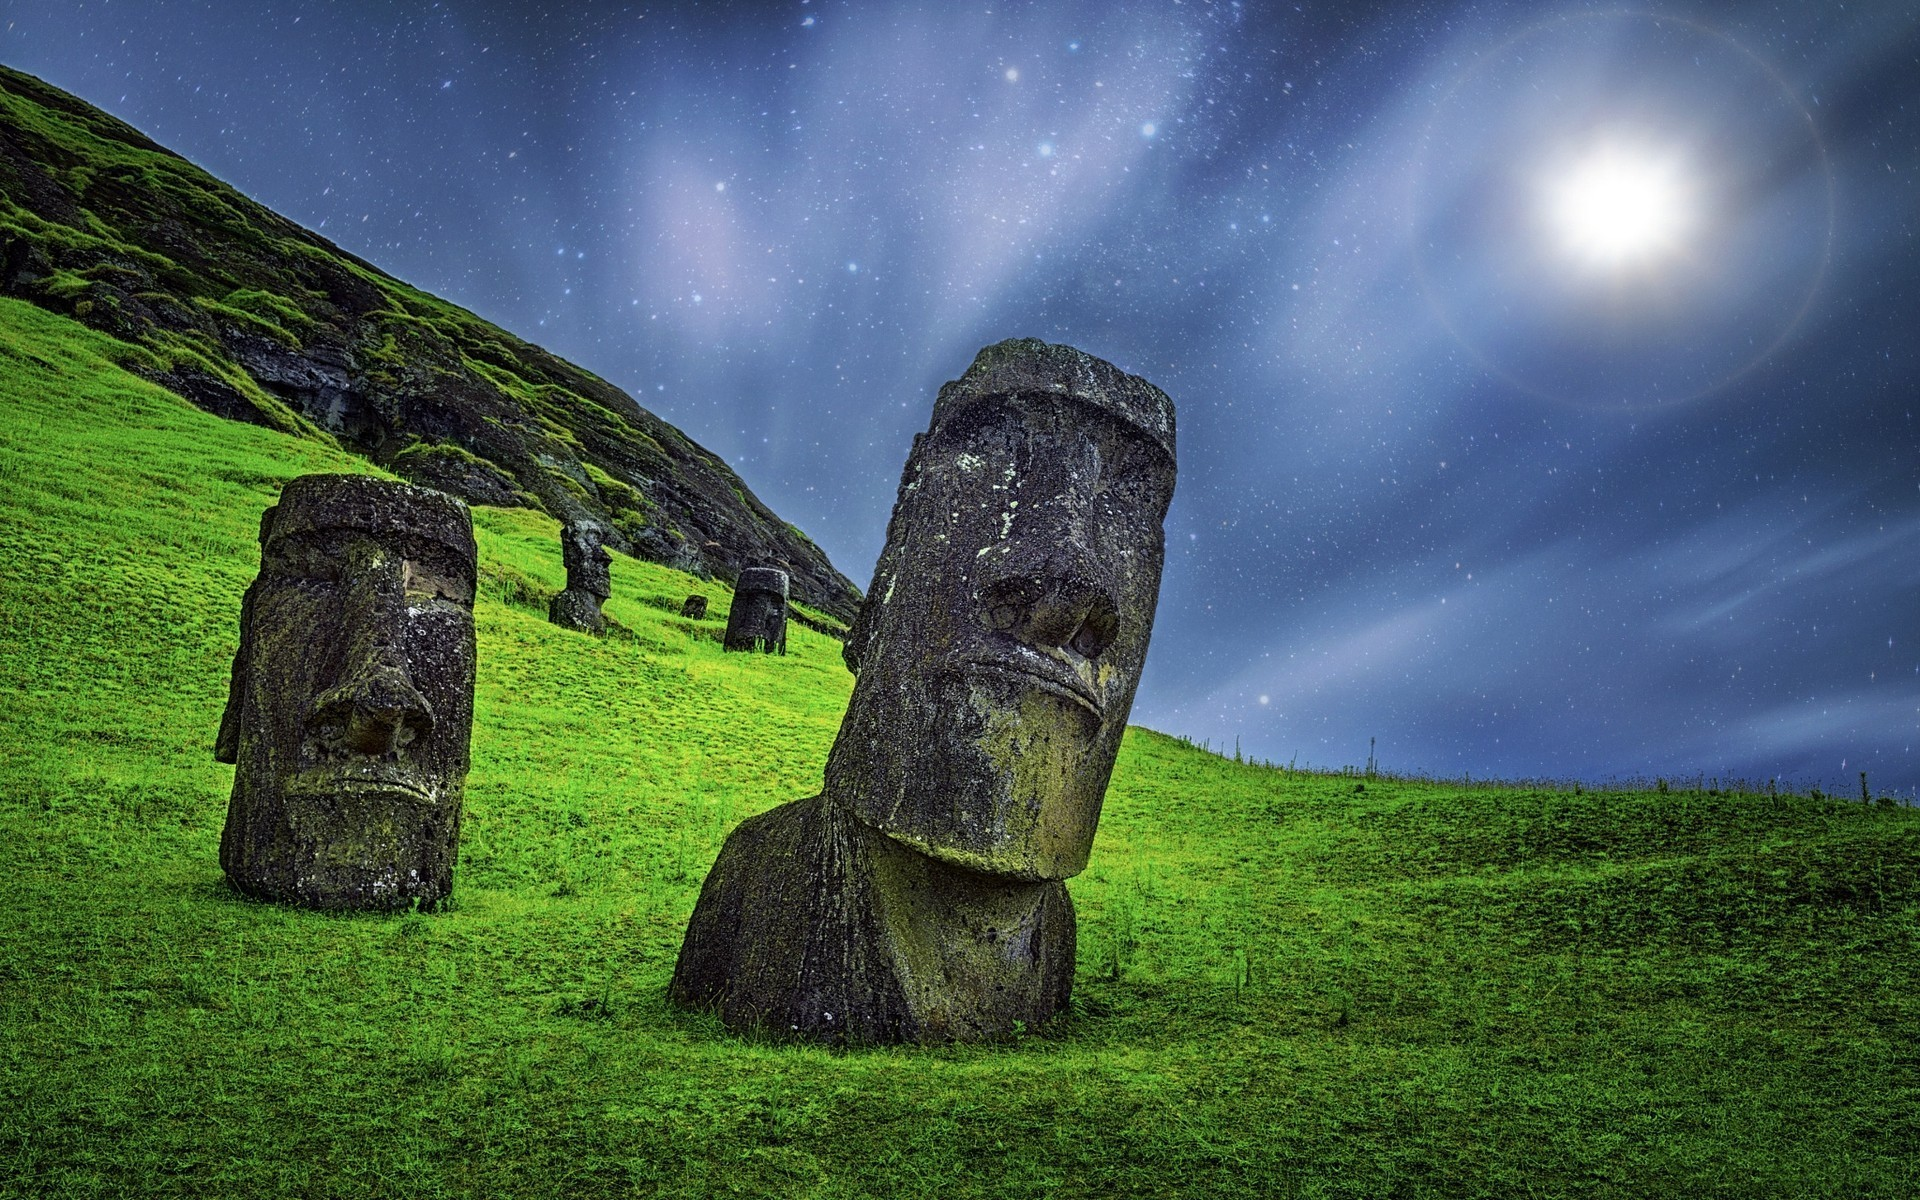 Res: 1920x1200, enigma nature landscape moai sculpture starry night grass moonlight easter  island rapa nui chile statue stone long exposure wallpaper and background